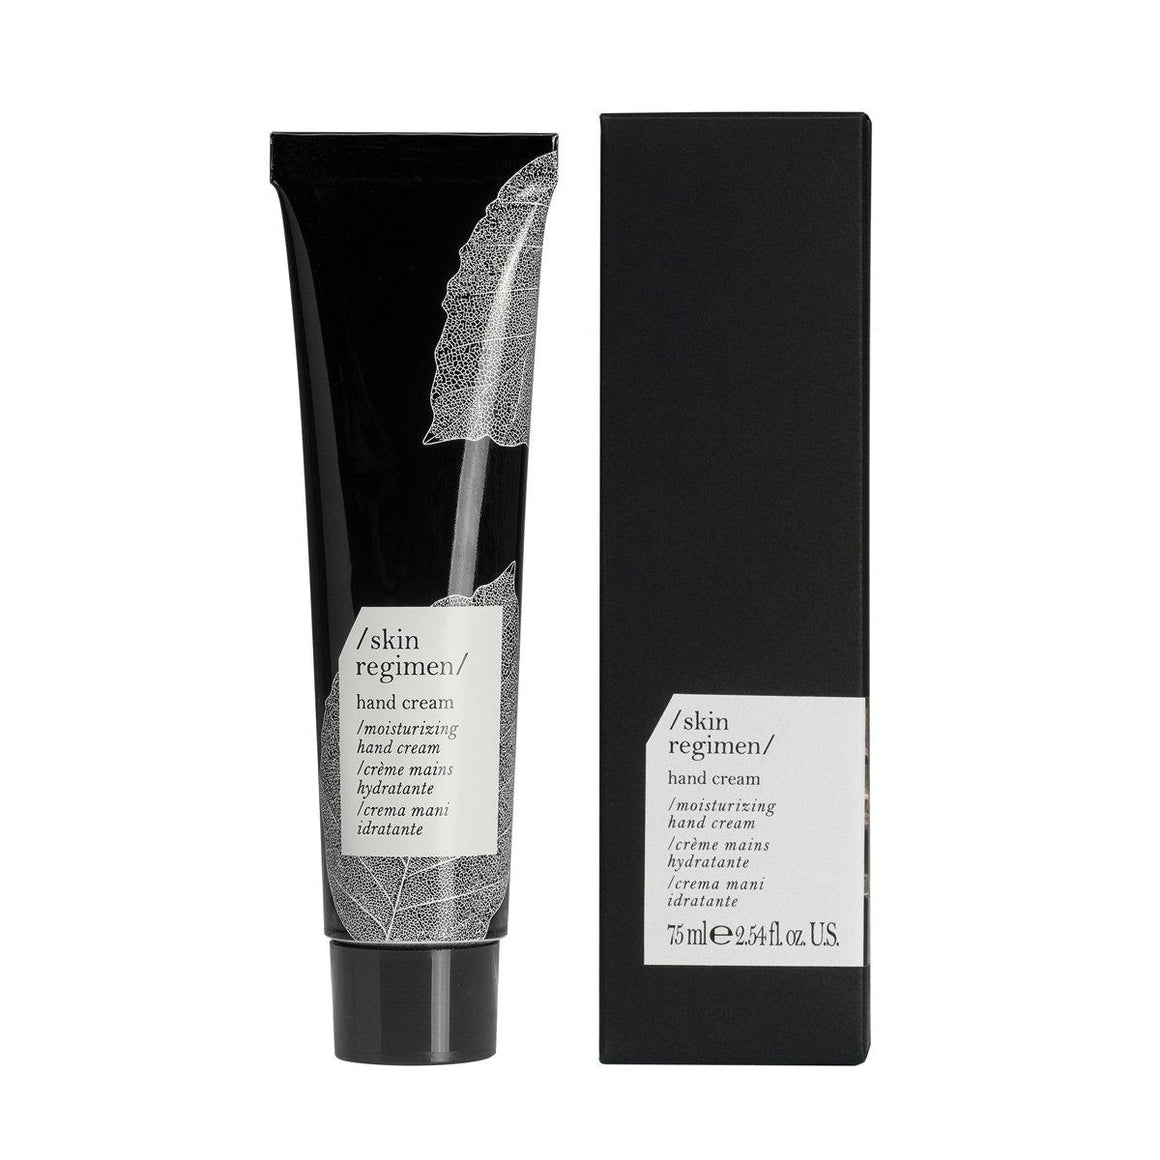 hand cream 75ml Skin regimen